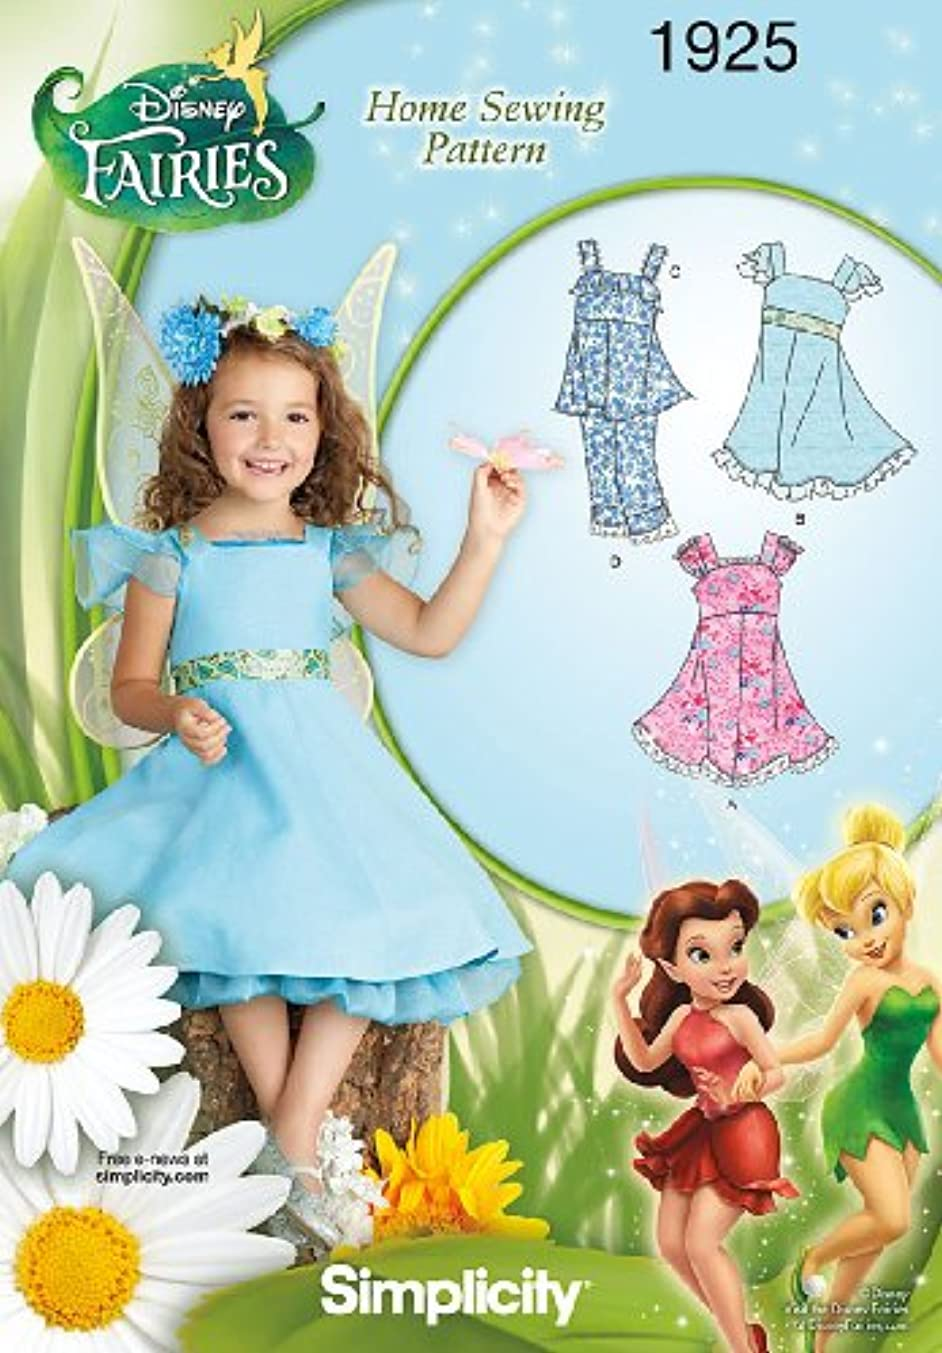 Simplicity Sewing Pattern 1925 Child's Dresses Disney Fairies, Size A (3-4-5-6-7-8)